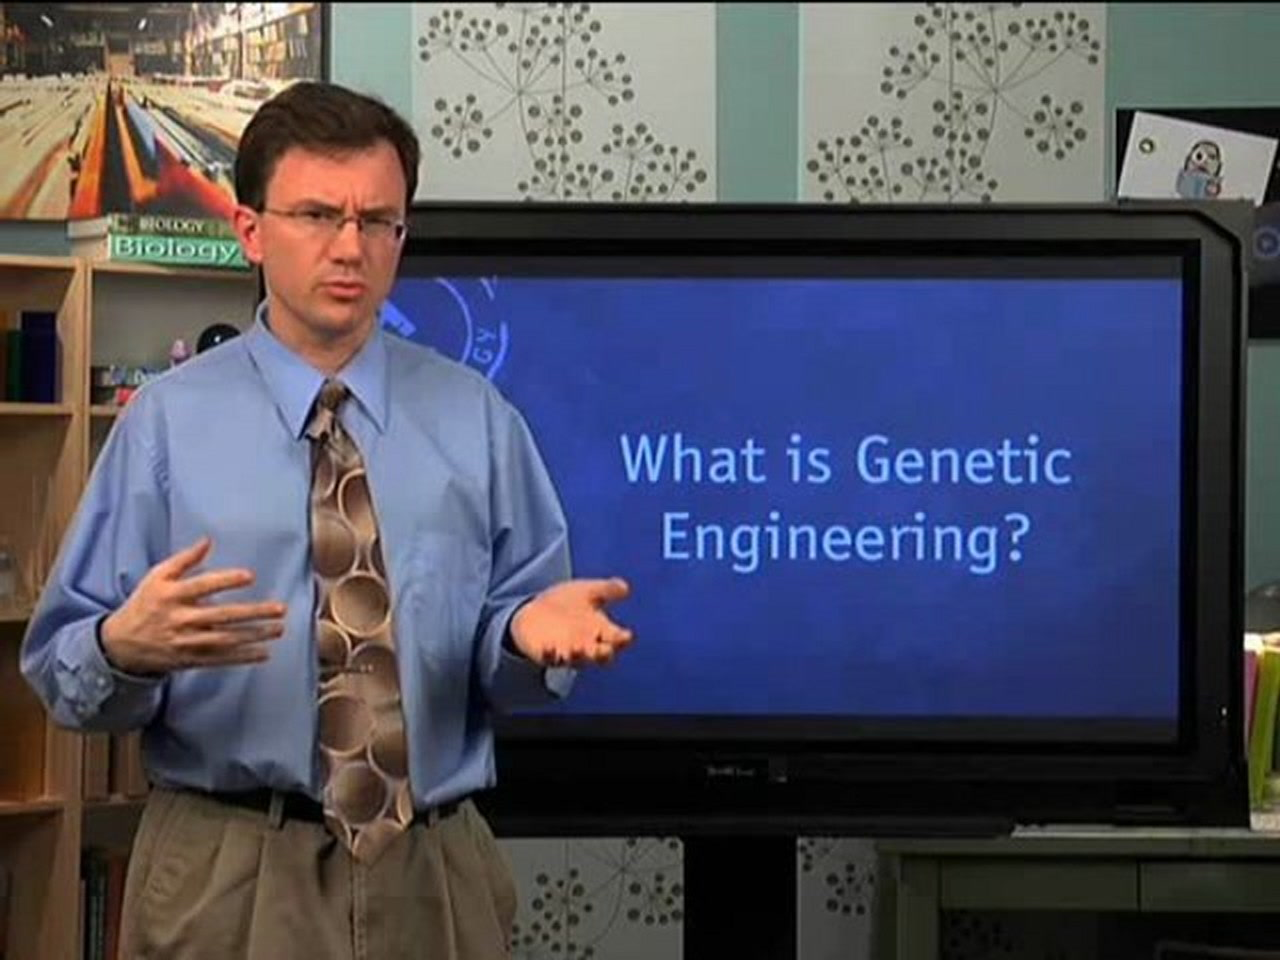 an essay on genetic engineering and its endless possibilities The genetic debate essay  go on further because of the endless possibilities that  past century but not as many possibilities as genetic engineering.